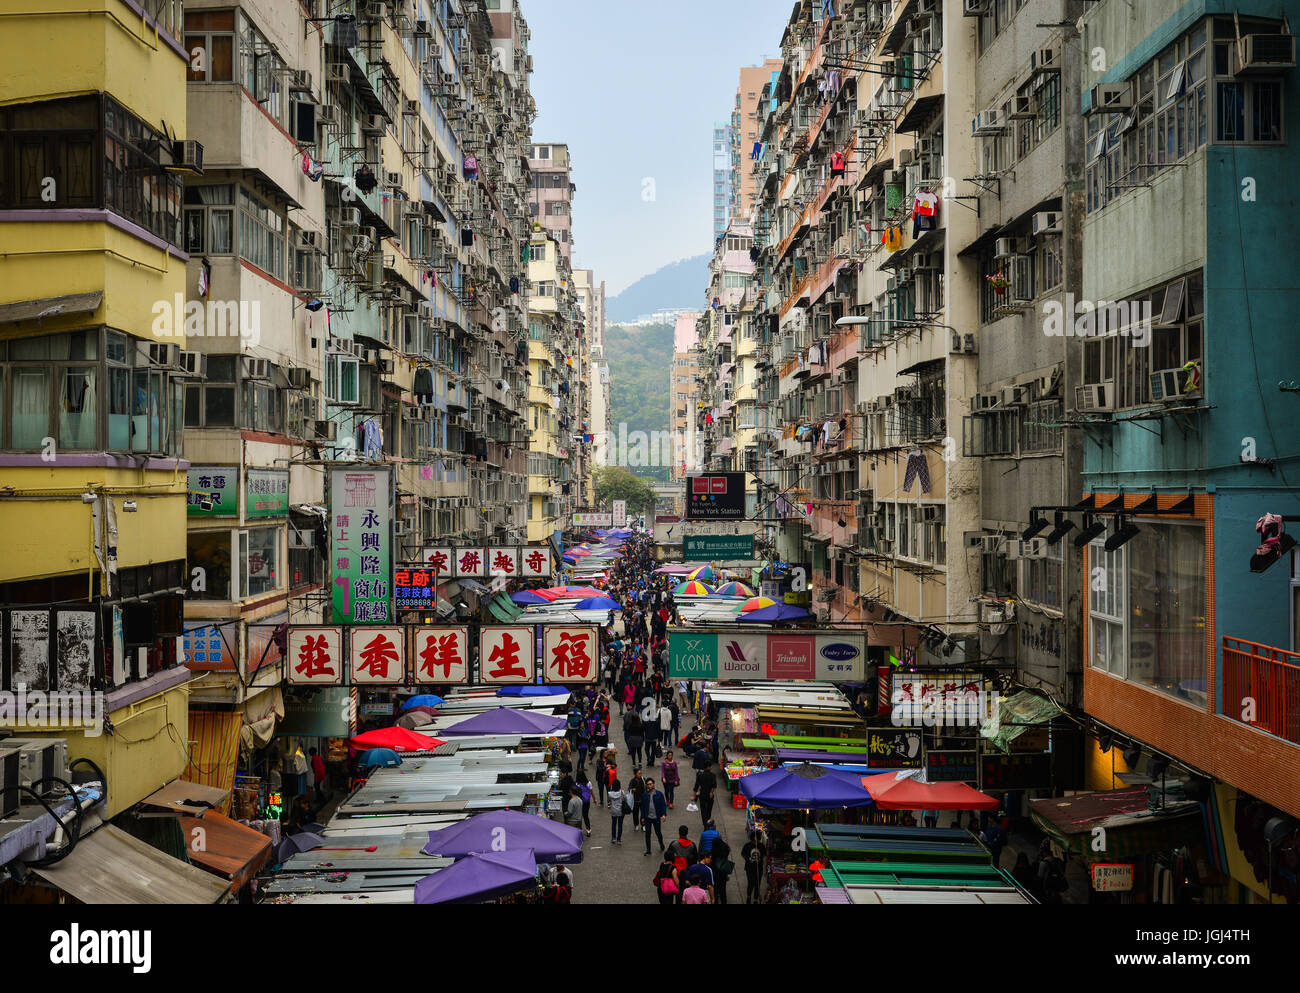 Hong Kong - Mar 29, 2017. The busy Fa Yuen street market with old buildings in Hong Kong. The area is popular with - Stock Image